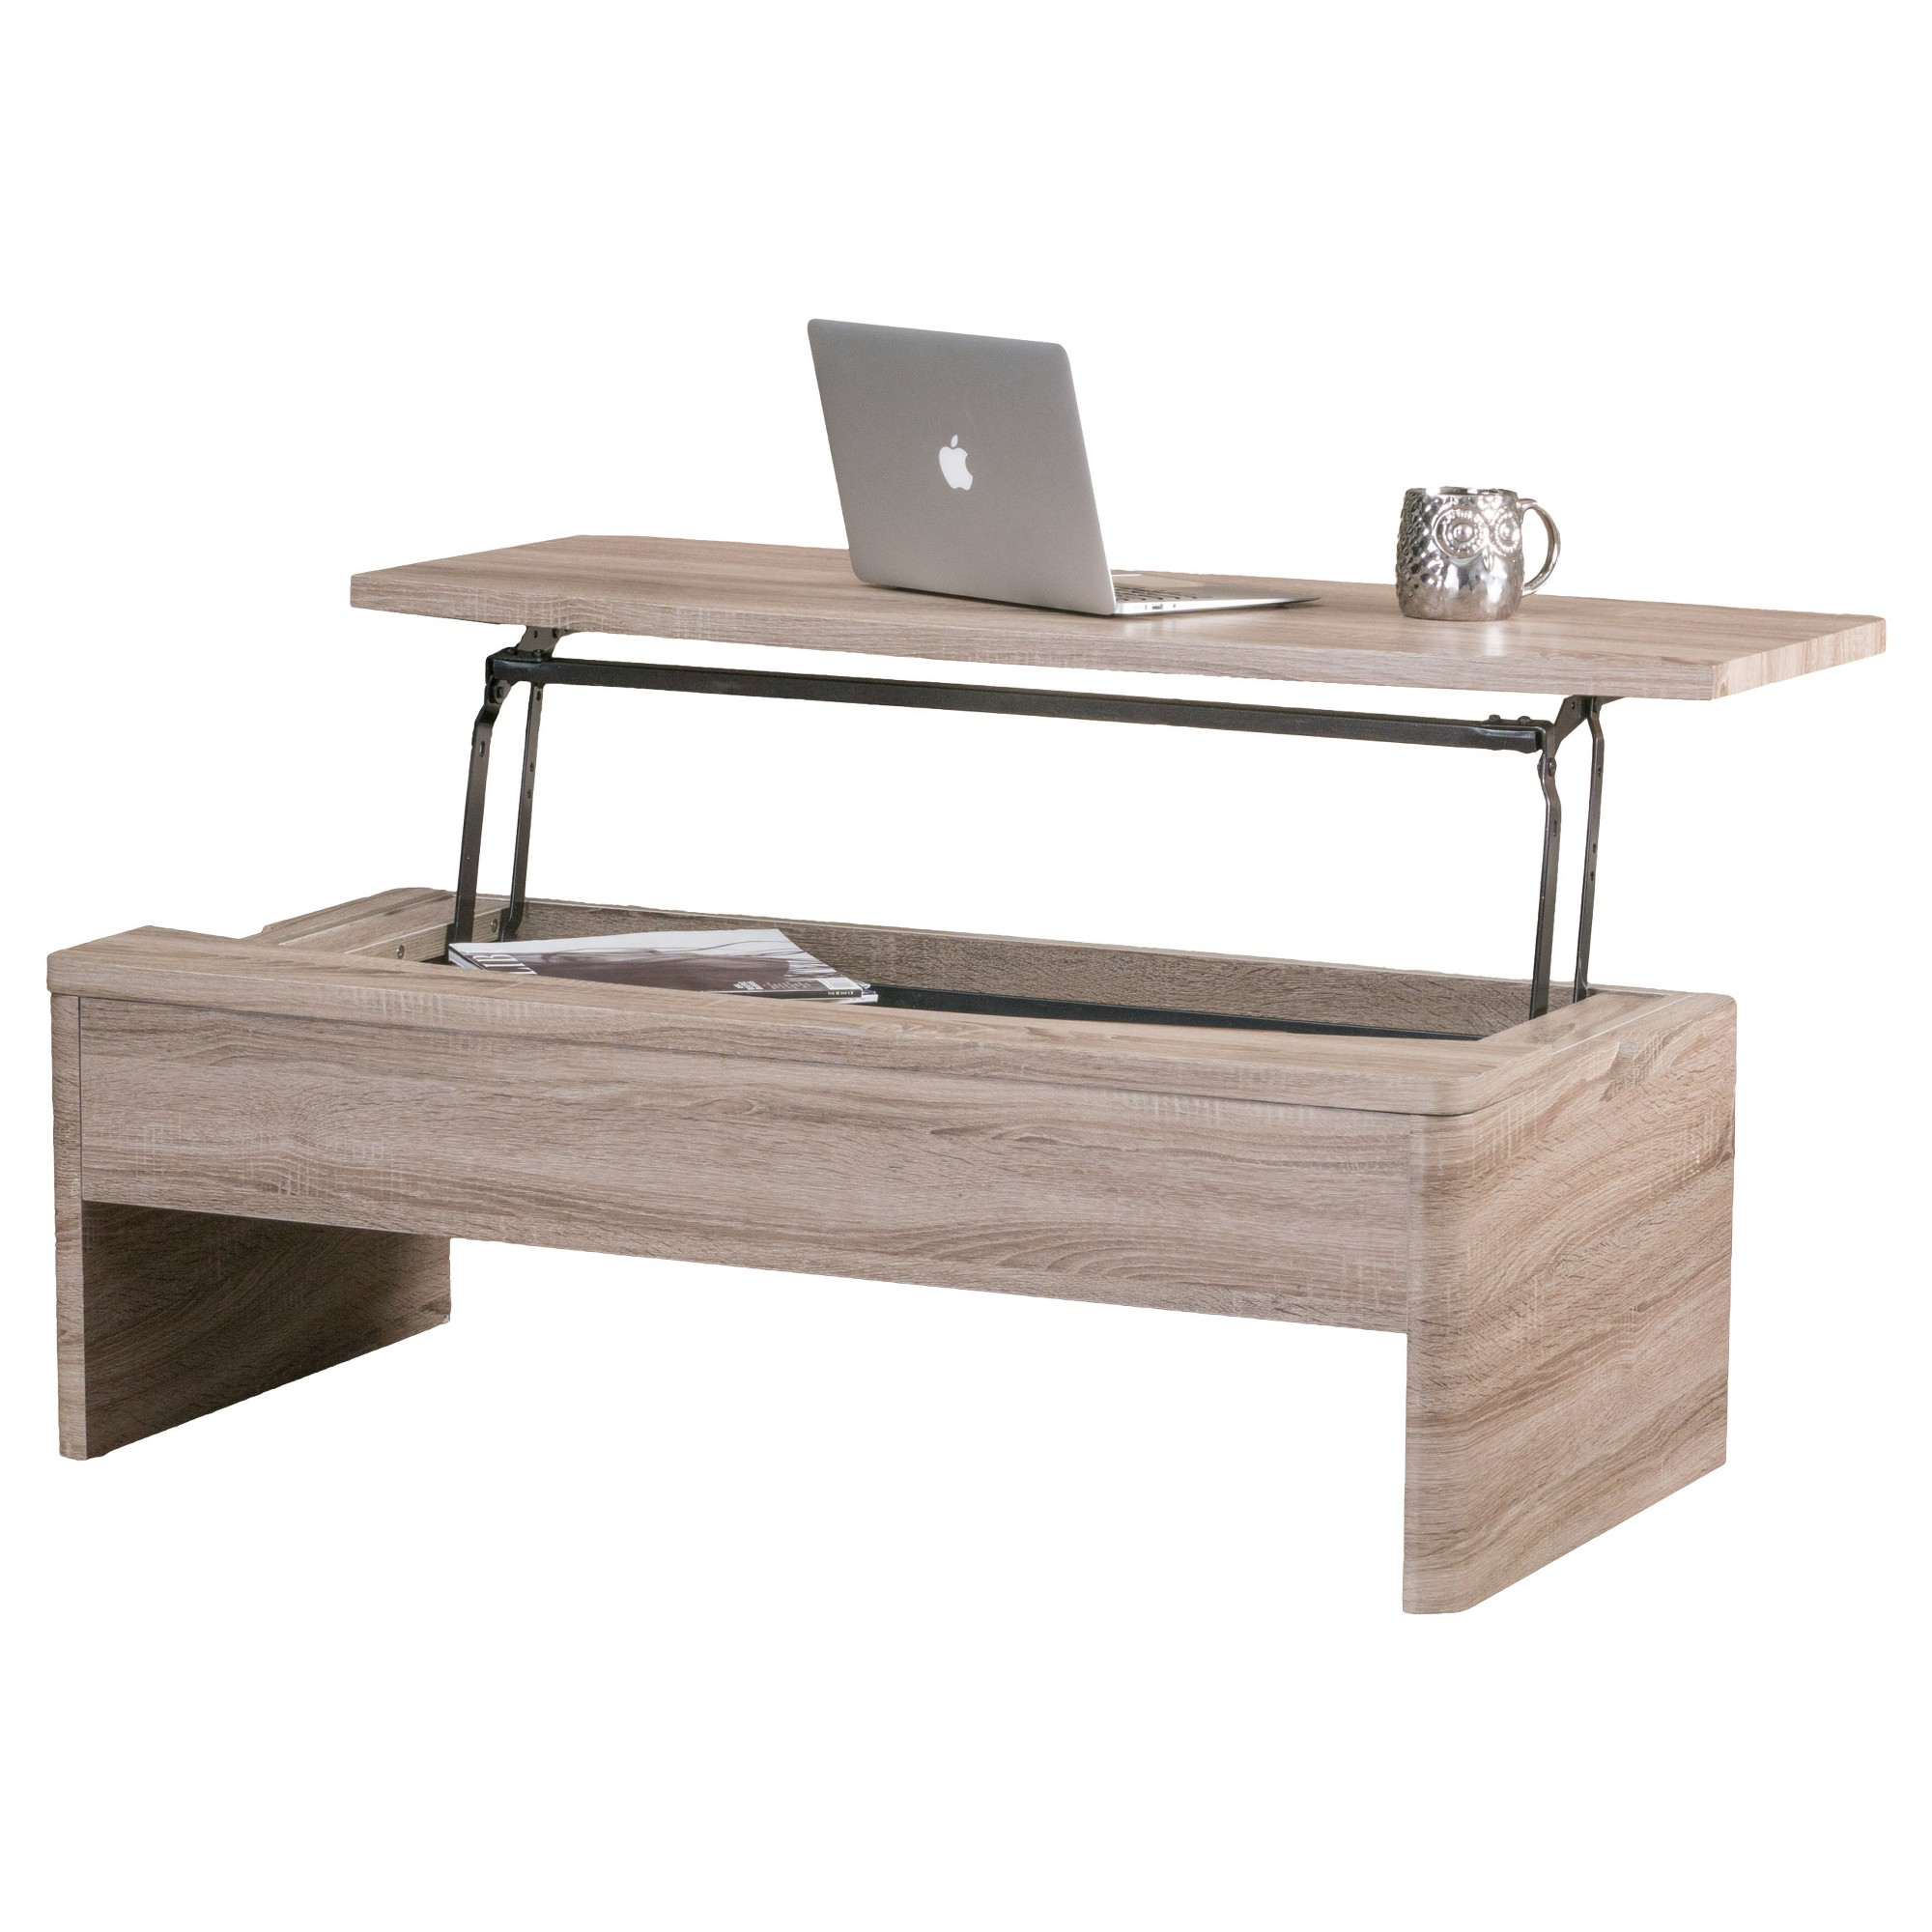 Xander Coffee Table Lift Top Christopher Knight Home Sonoma Tan Coffee Table Lift Coffee Table Coffee Table Wood [ 2000 x 2000 Pixel ]